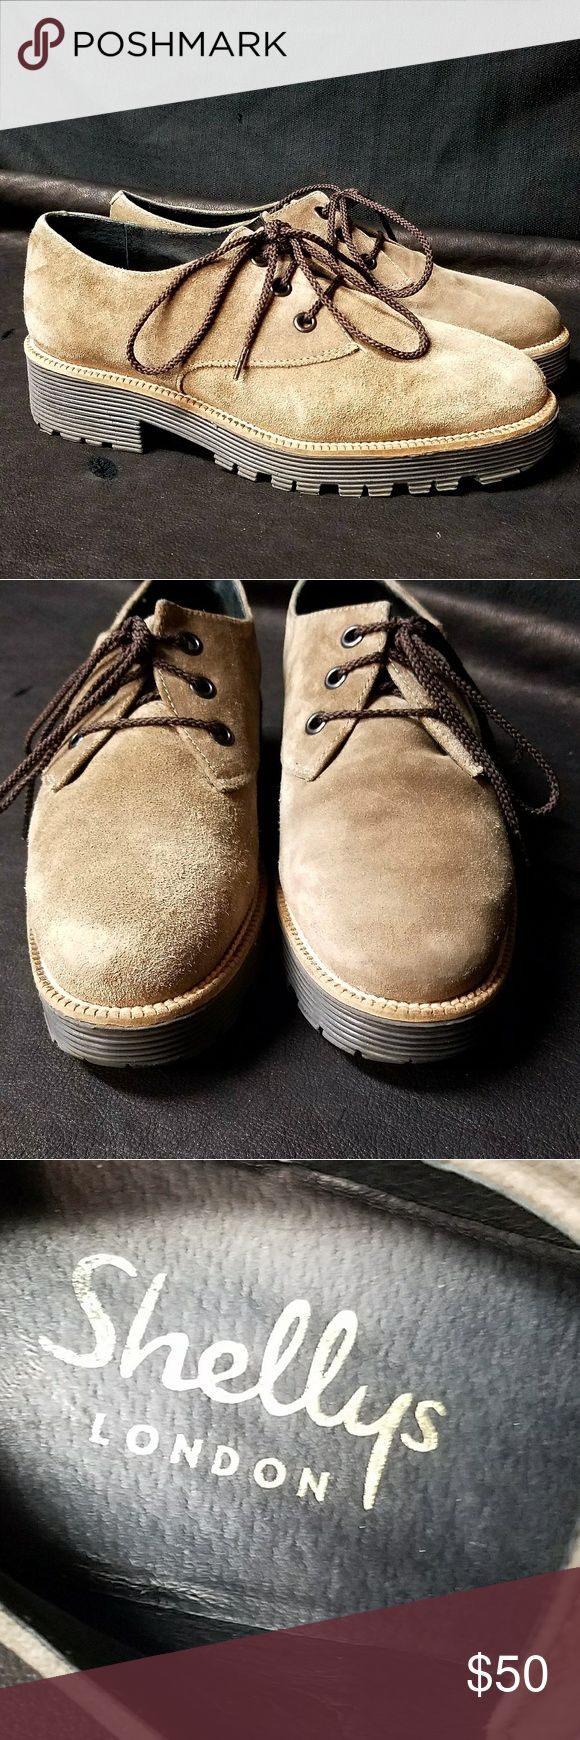 Shellys London Suede Oxfords All leather lining, suede oxford. Color is almost a green/tan. Excellent condition with almost no signs of wear. Rubber sole with 1.5 inch heel height. Made in Spain. Shellys London Shoes Flats & Loafers